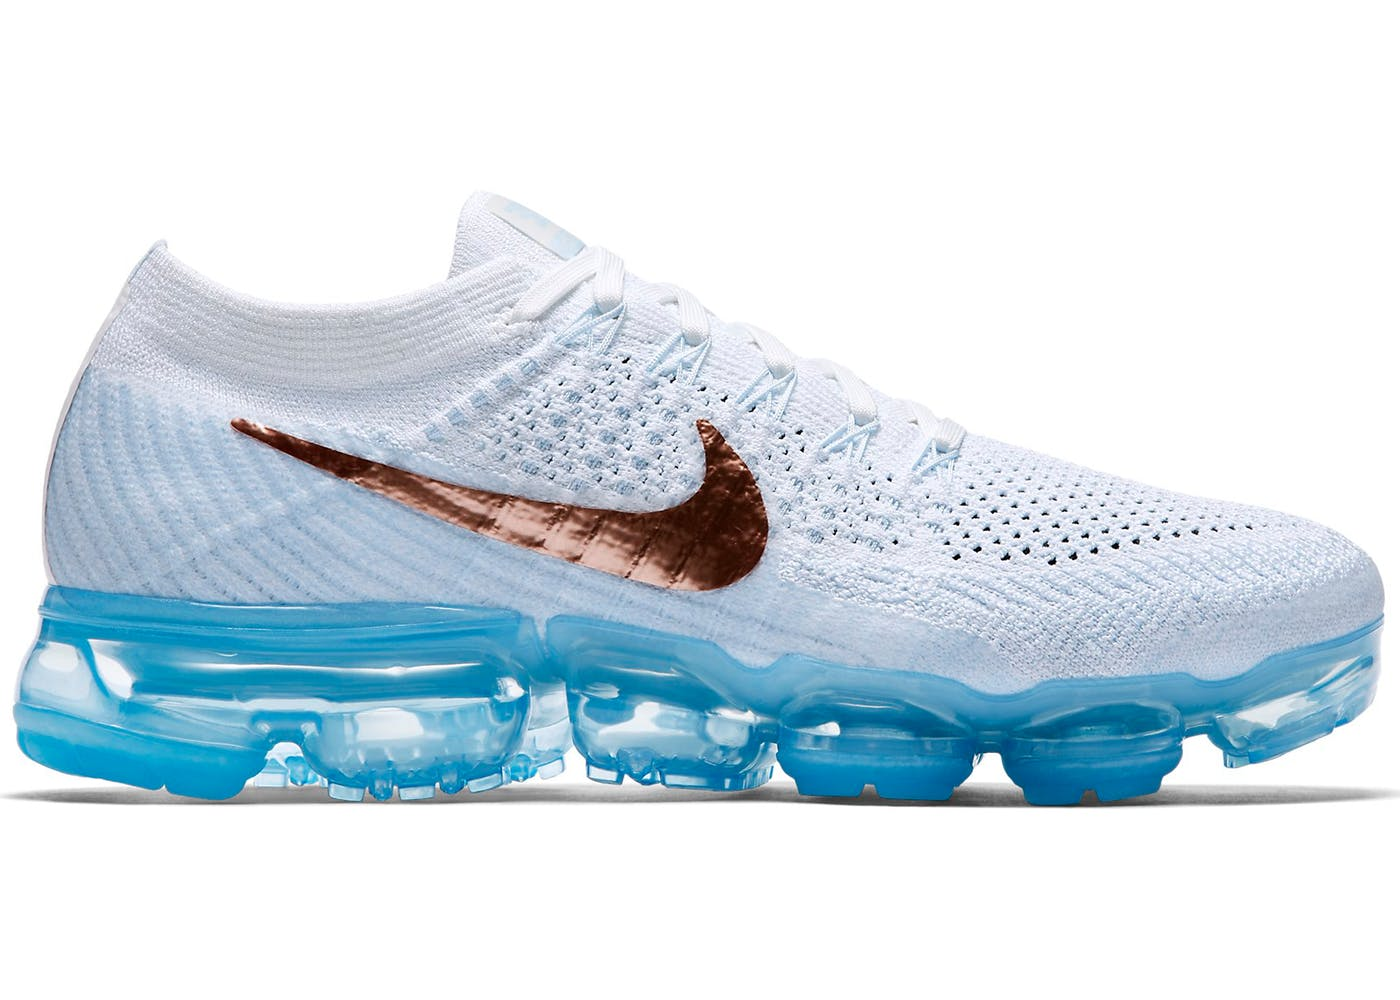 Nike Air VaporMax Flyknit Men's Running Shoes